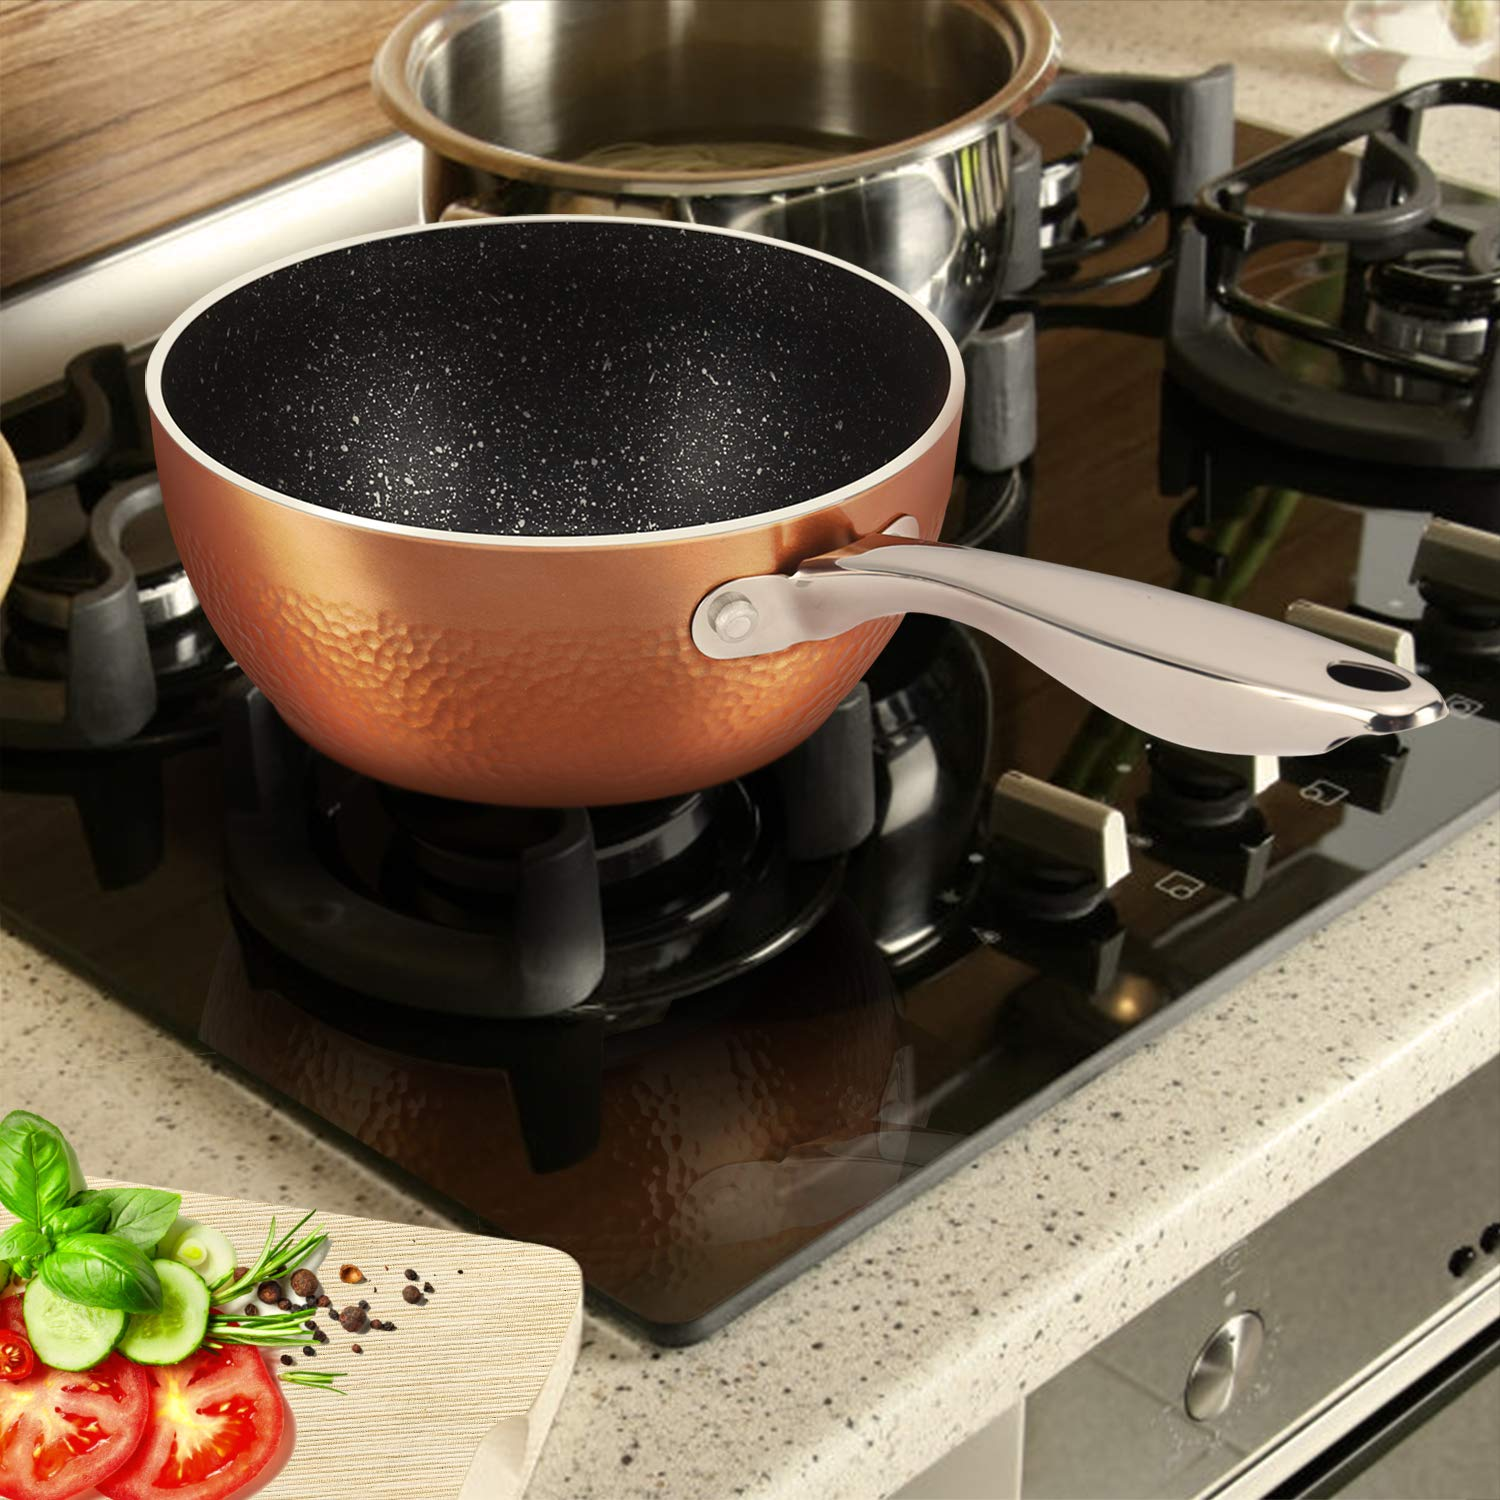 MICHELANGELO 1.5 Quart Sauce Pan with Lid, Small Copper Saucepan with Nonstick Stone Interior Coating & Hammering Exterior by MICHELANGELO (Image #5)